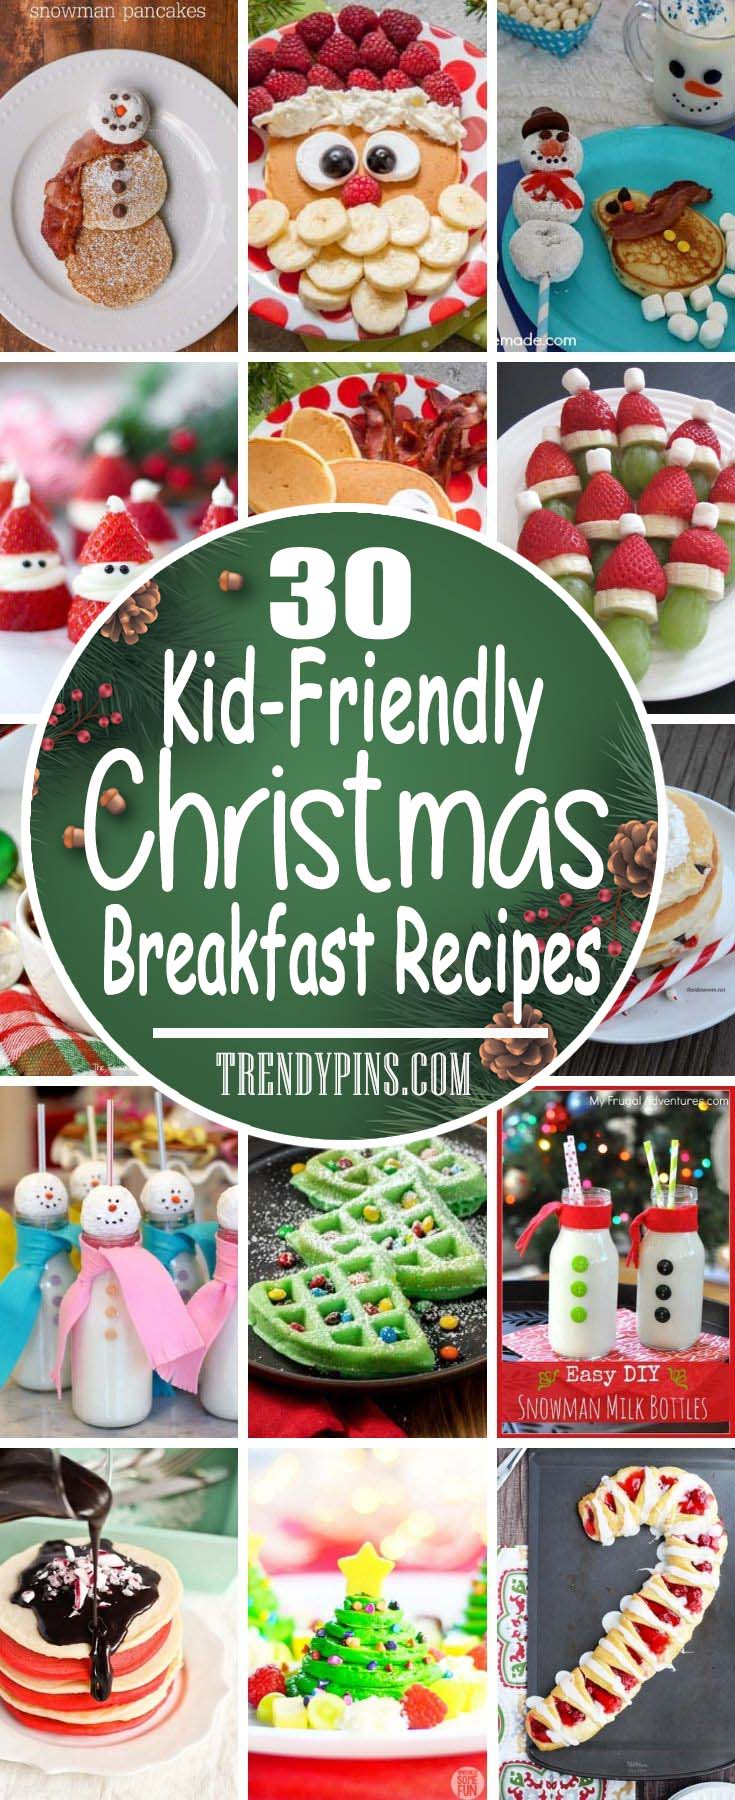 30 Kid Friendly Christmas Breakfast Recipes #Christmas #breakfast #recipes #trendypins